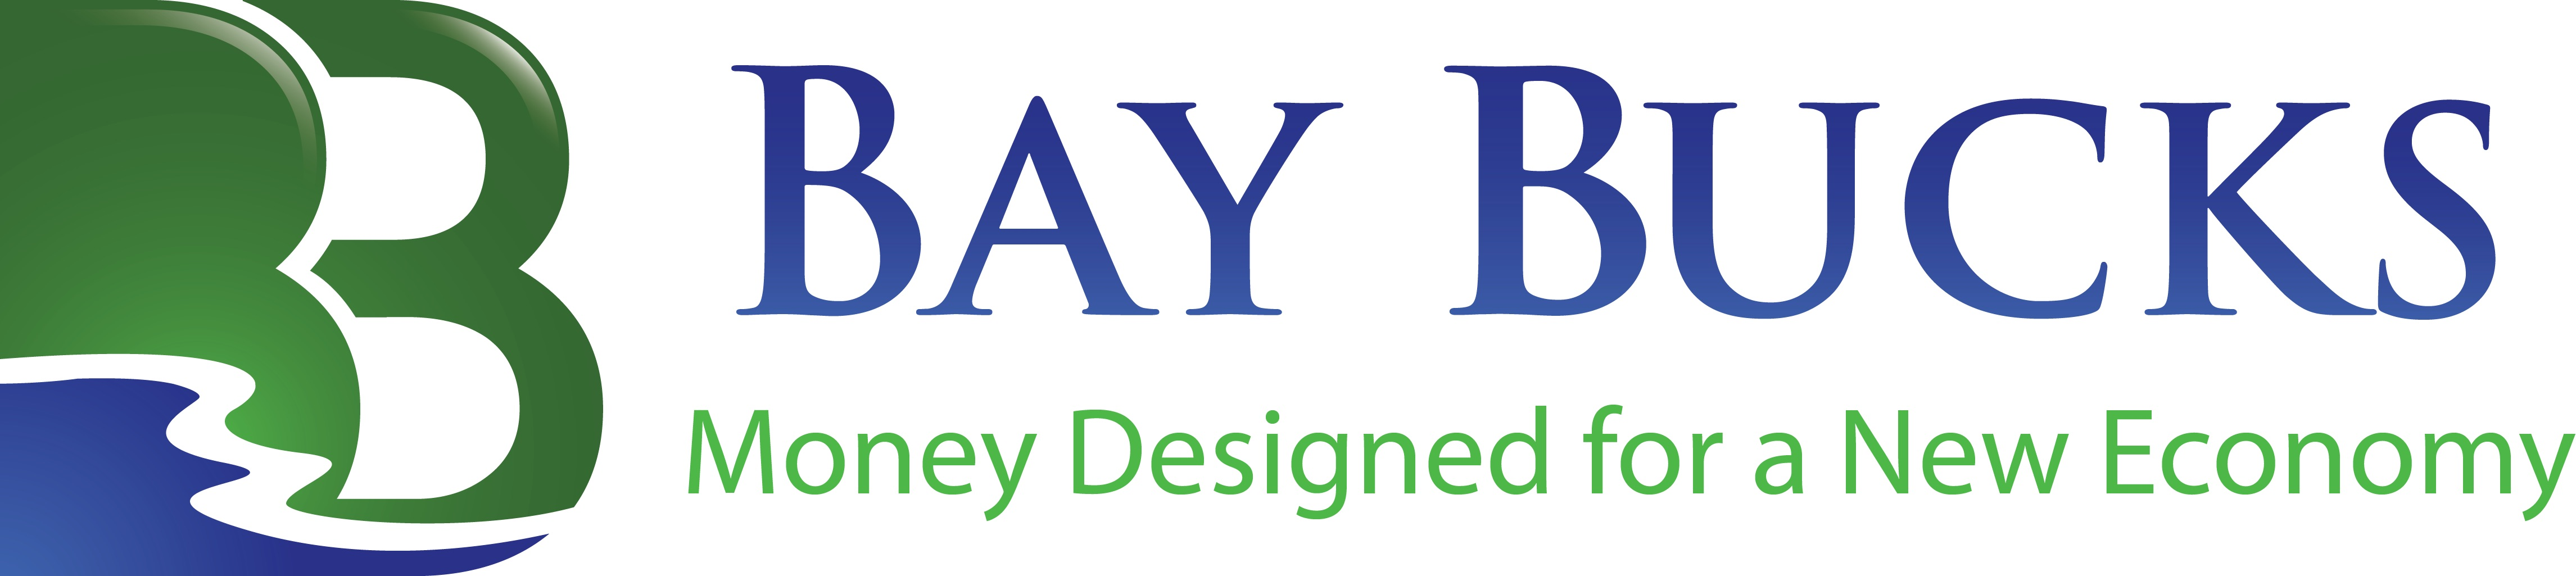 Bay Bucks Logo Large Copy